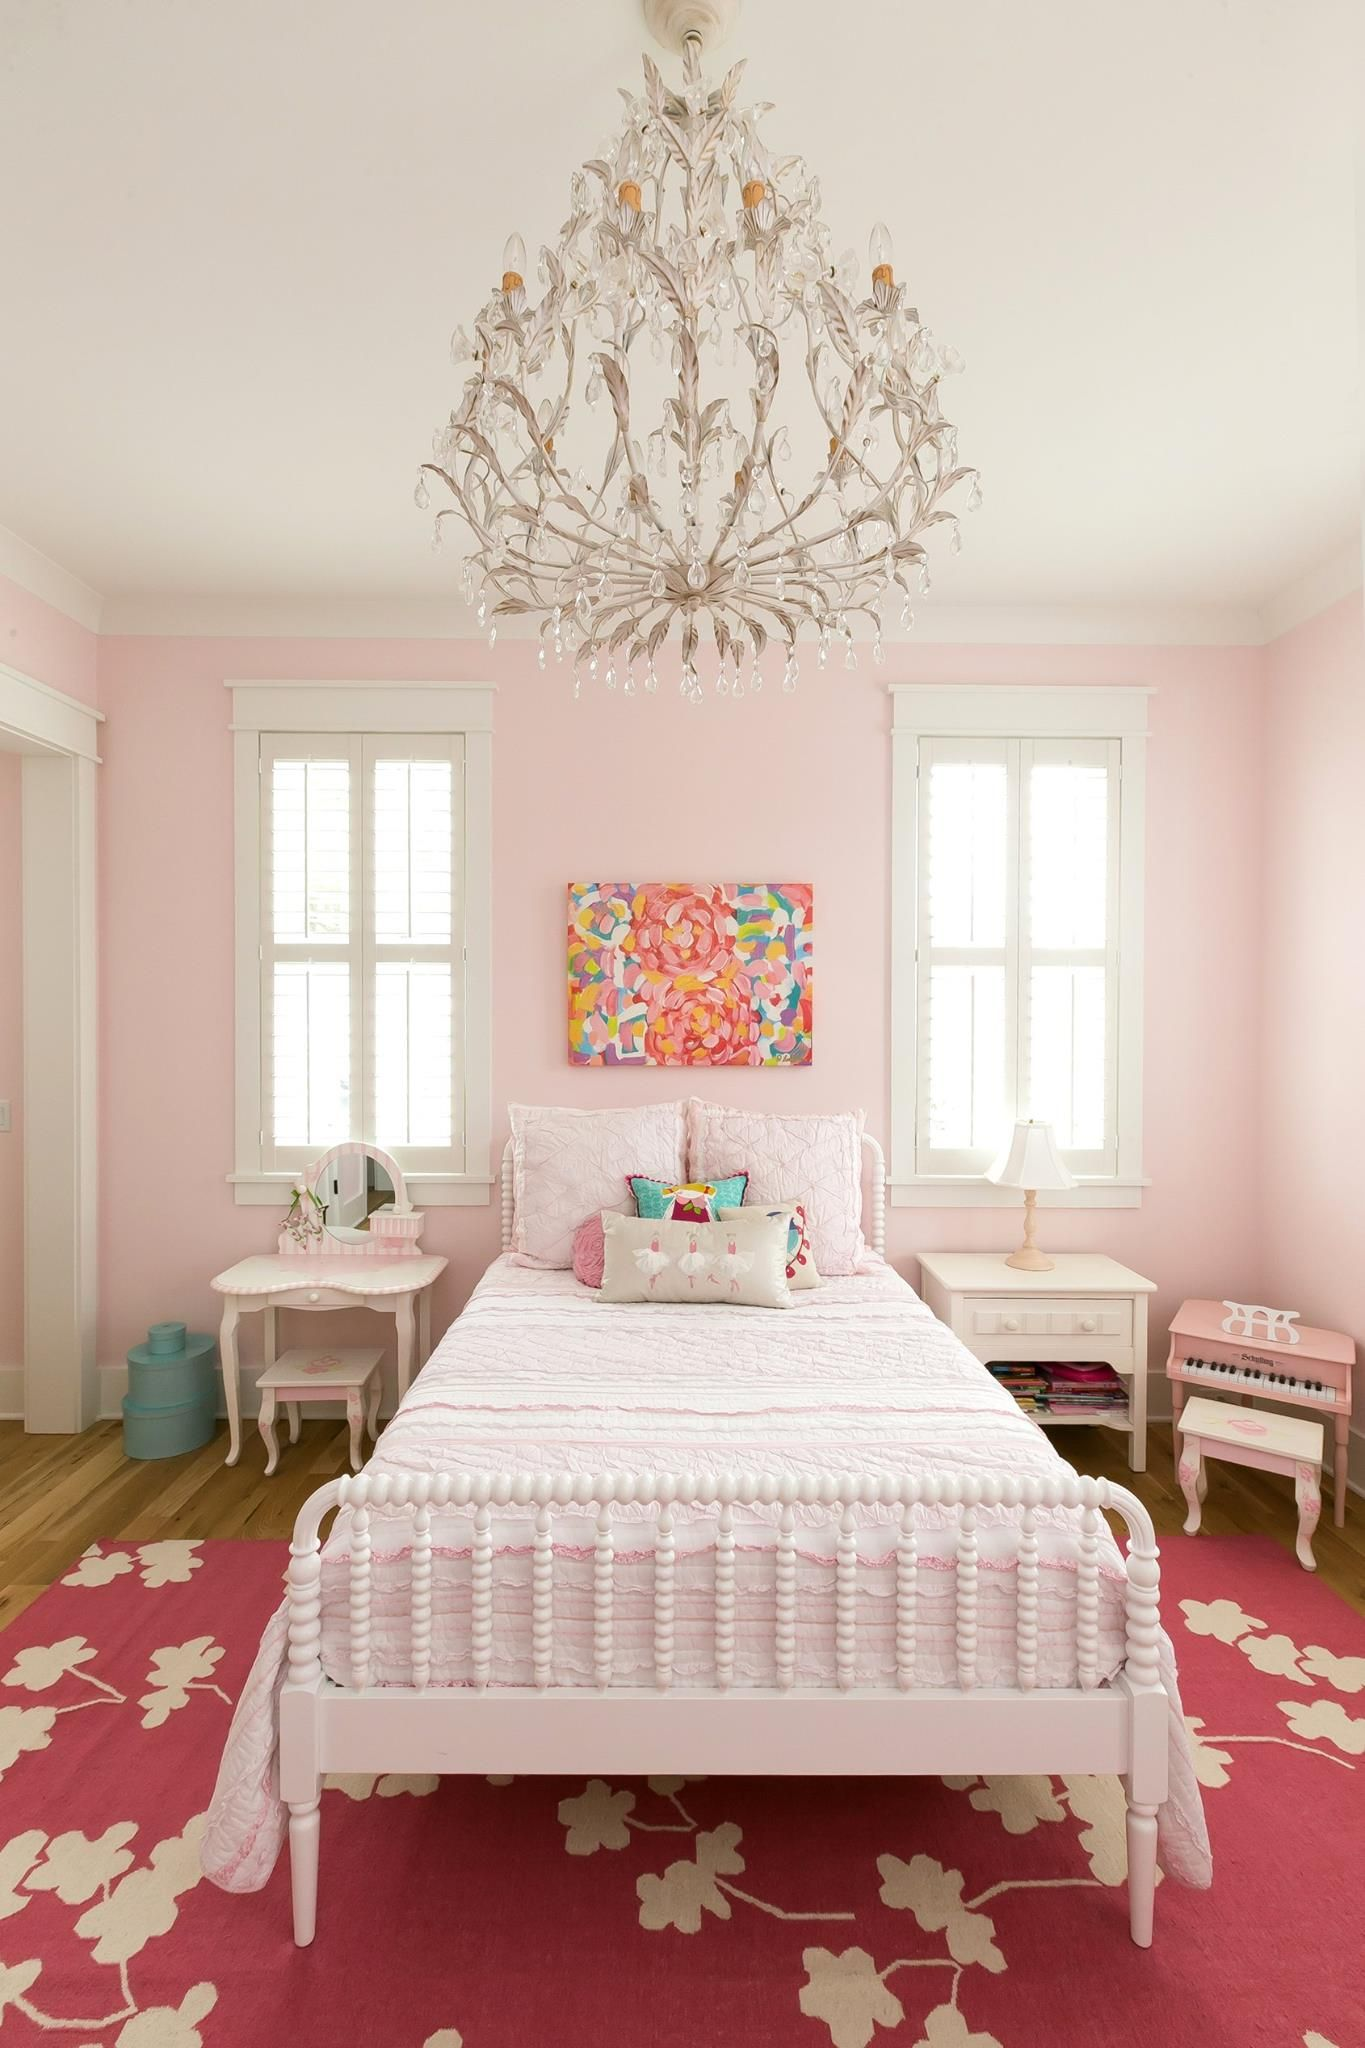 Girls room chandelier white antique bed dark pink rug pale pink walls colorful painting by jennifer latimer white side tables nightstands